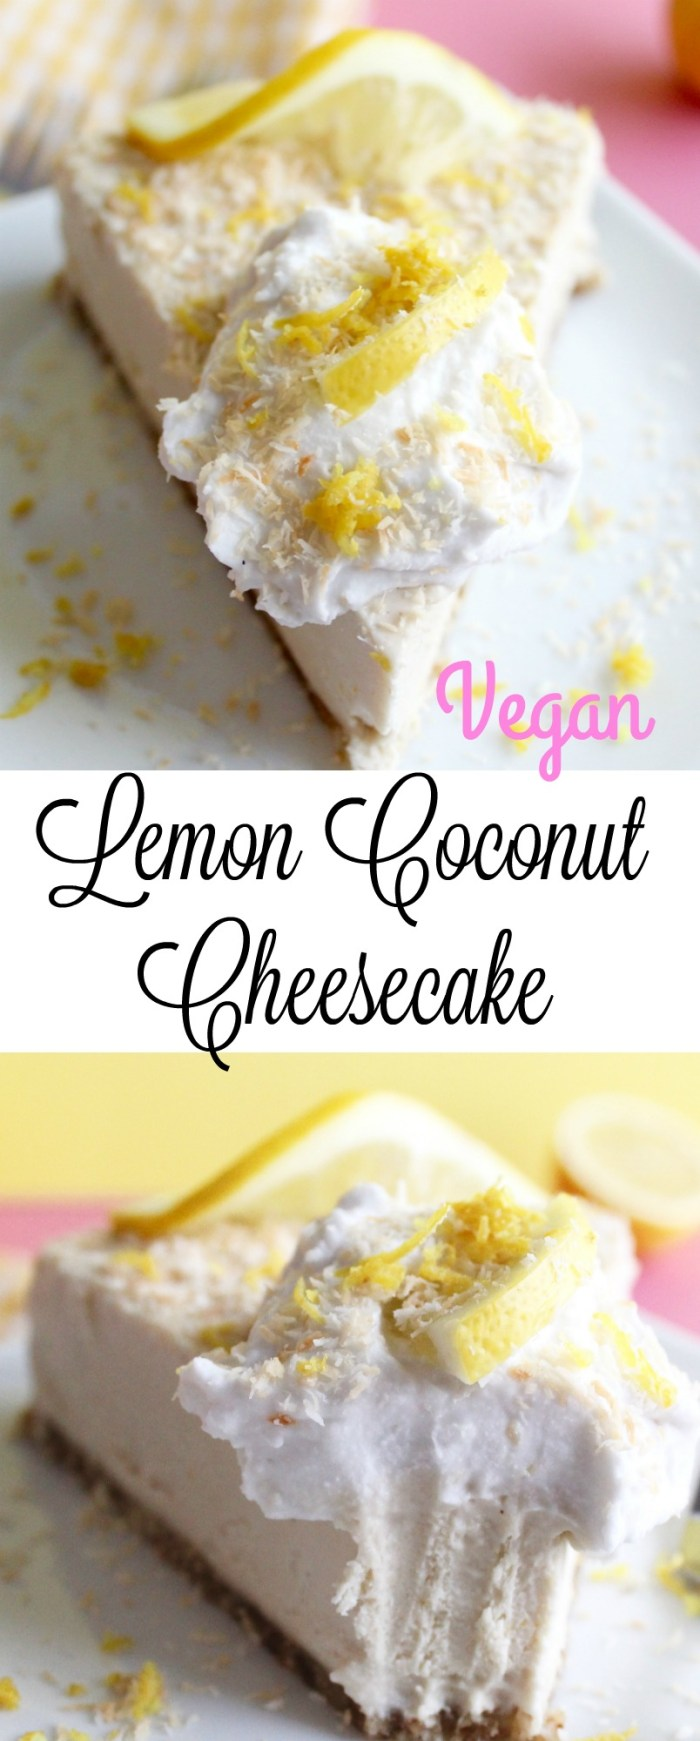 This Vegan Lemon Coconut Cheesecake is out of this world! It's naturally sweetened and gluten free too!